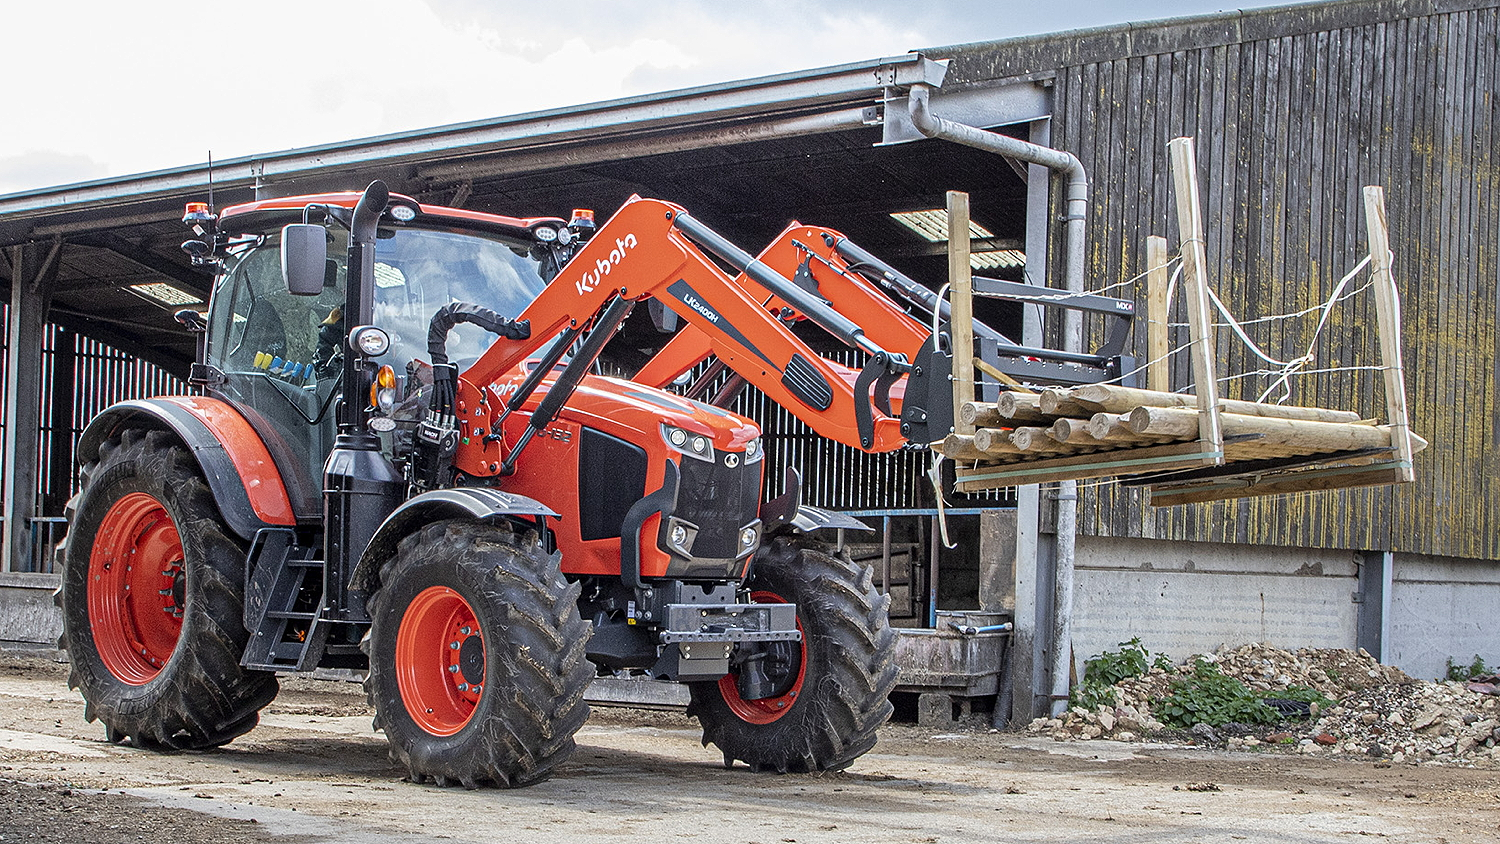 MX will supply loaders for Kubota's M-series models including the M4003, M5002, MGX-IV, M6002 and M7003